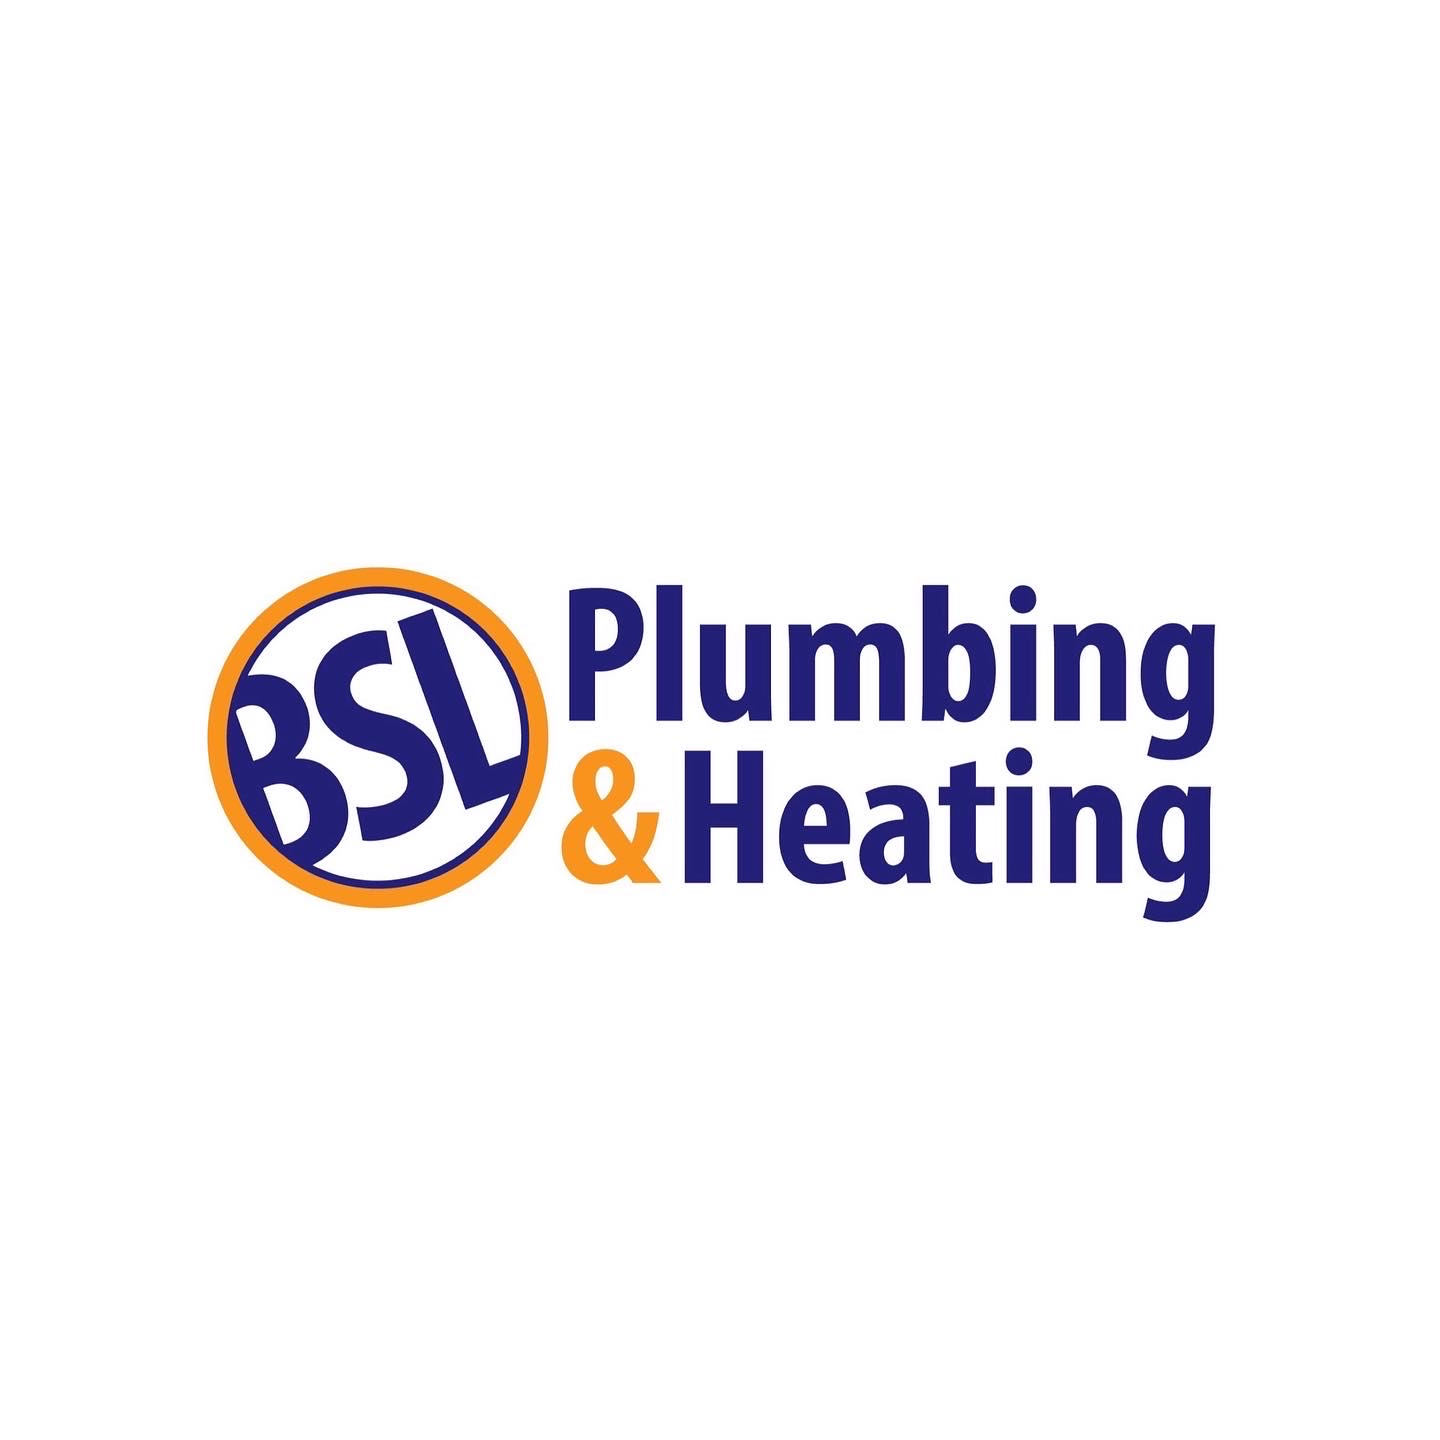 BSL Plumbing & Heating Verified Logo